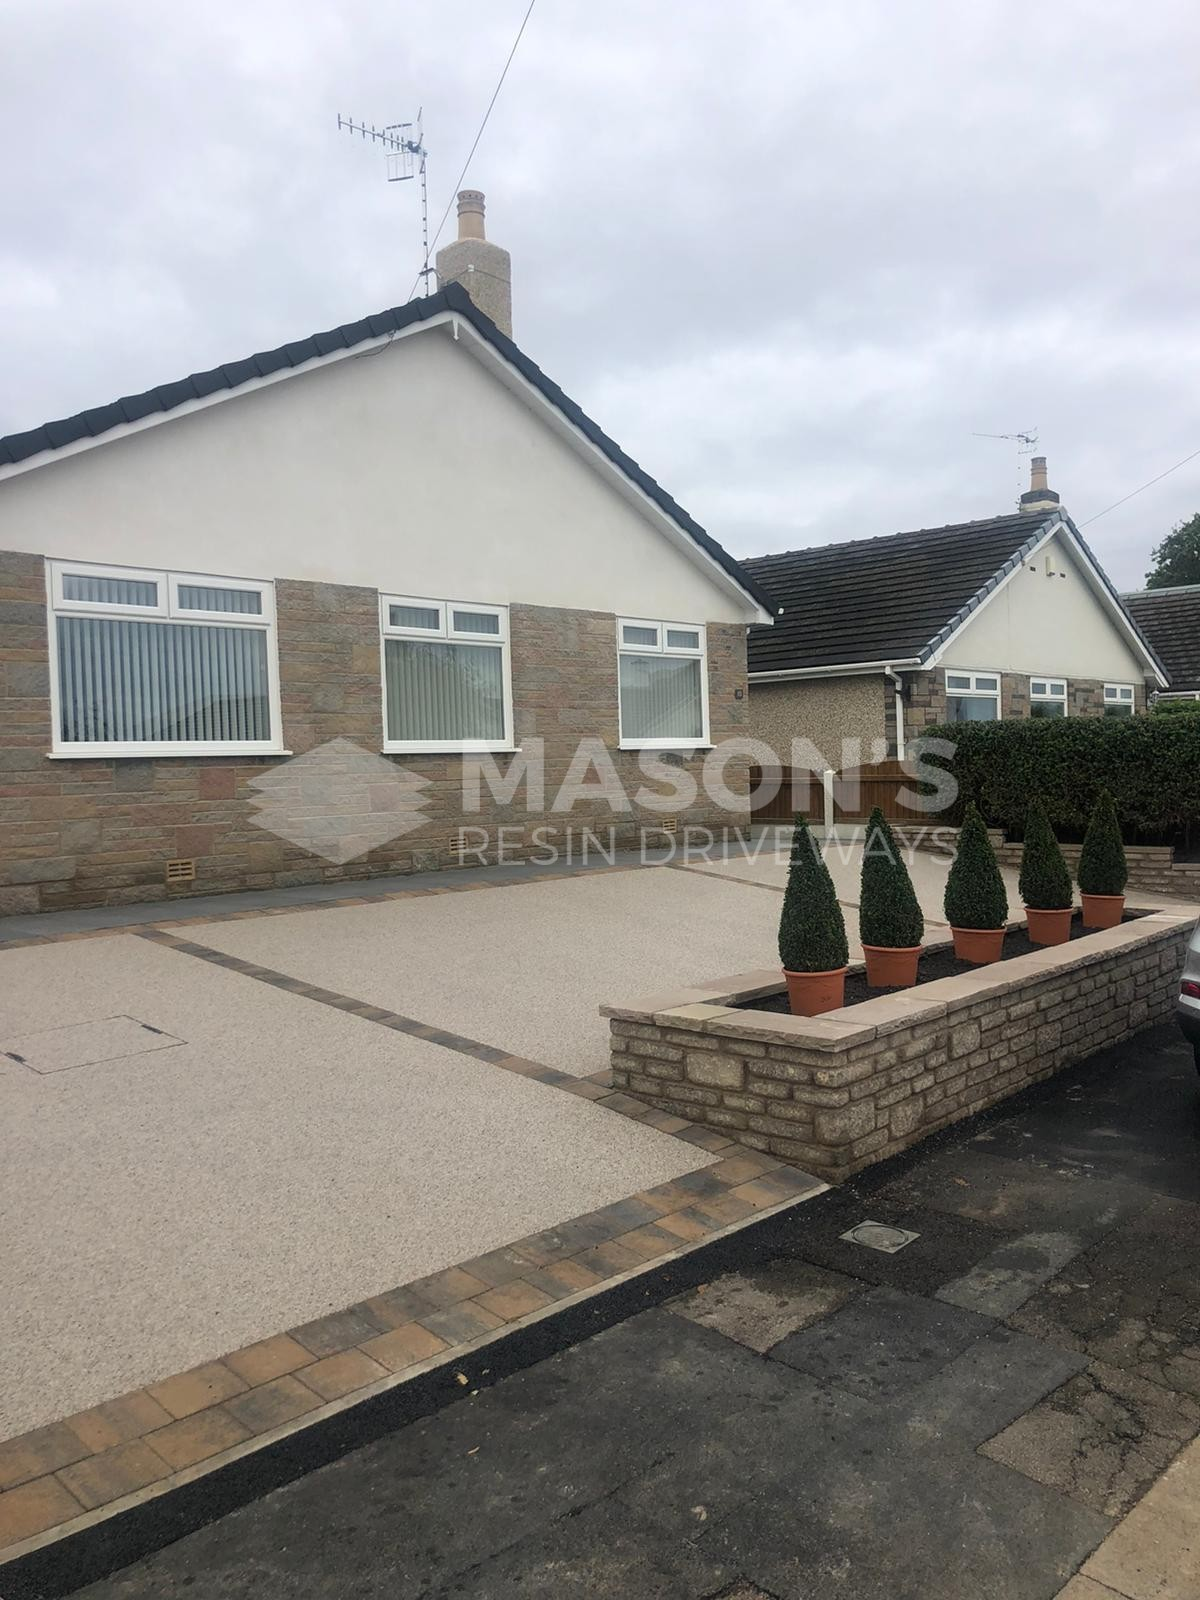 House and Resin Bound Driveway pearl quartz in Morecambe, Lancashire